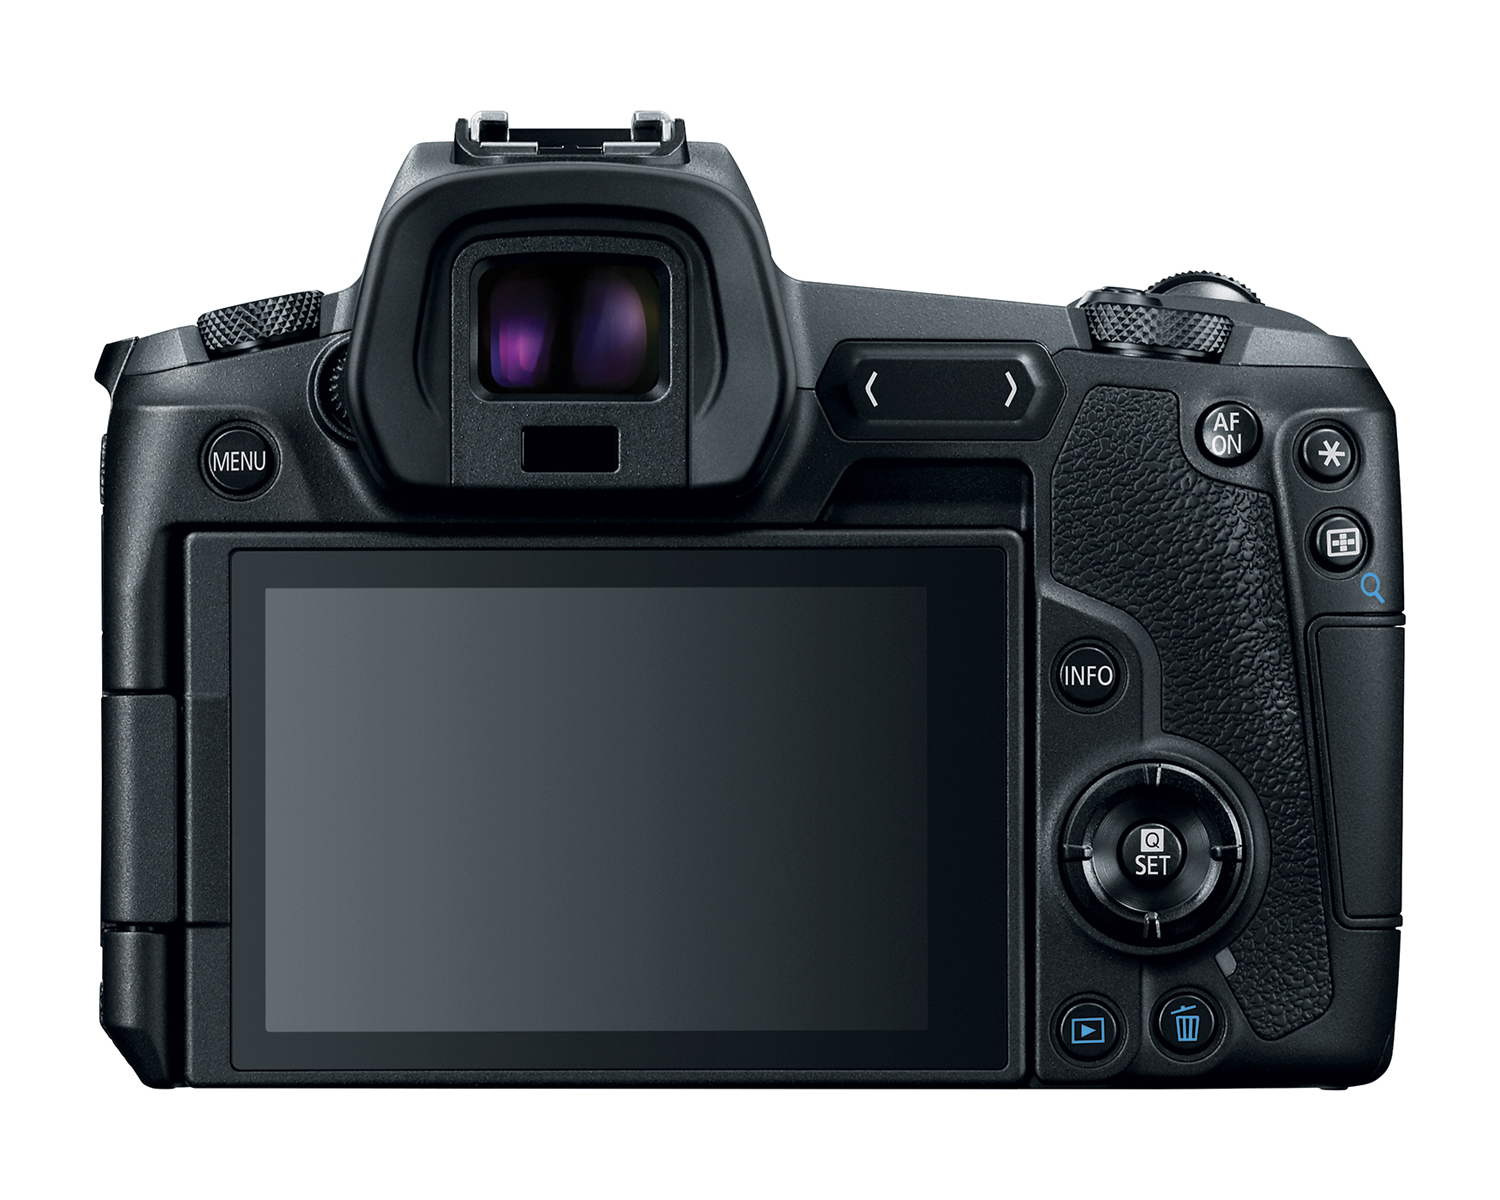 https://i0.wp.com/digital-photography-school.com/wp-content/uploads/2020/02/switch-to-mirrorless-in-2020-12.jpg?ssl=1